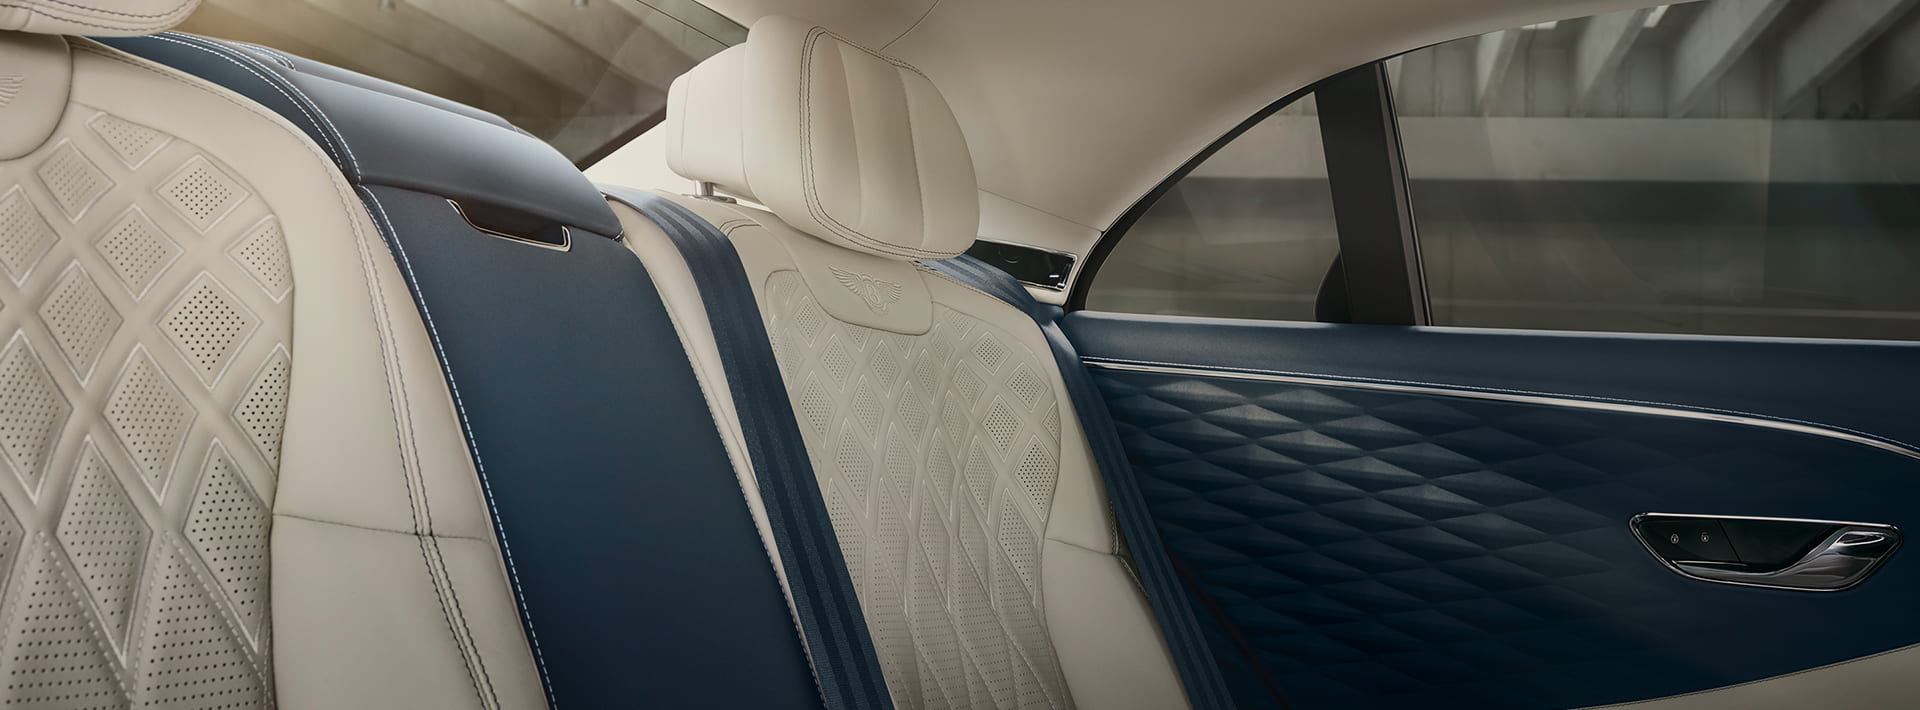 Unmatched leather interior with massage seats in Bentley's new Flying Spur.